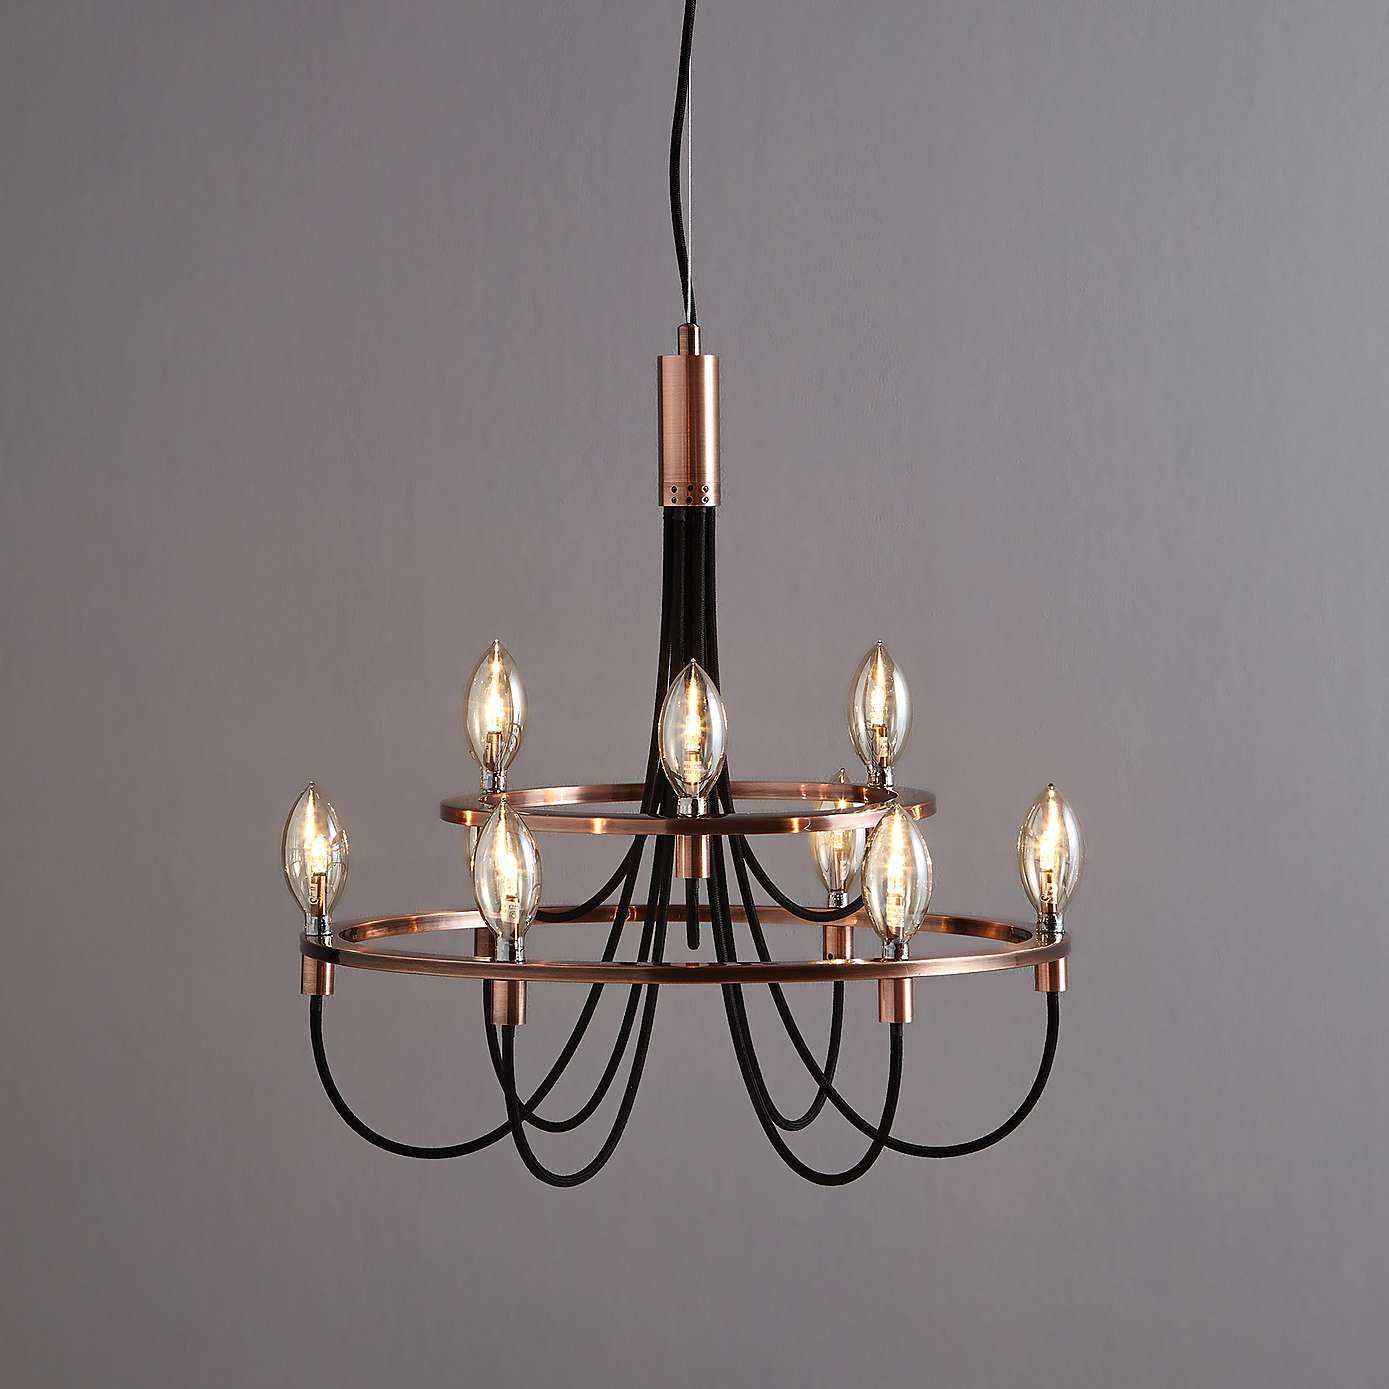 Fredirica 9 Light Copper Chandelier | 《华洋灯饰》创意吊灯 With Regard To Kenedy 9 Light Candle Style Chandeliers (View 17 of 30)